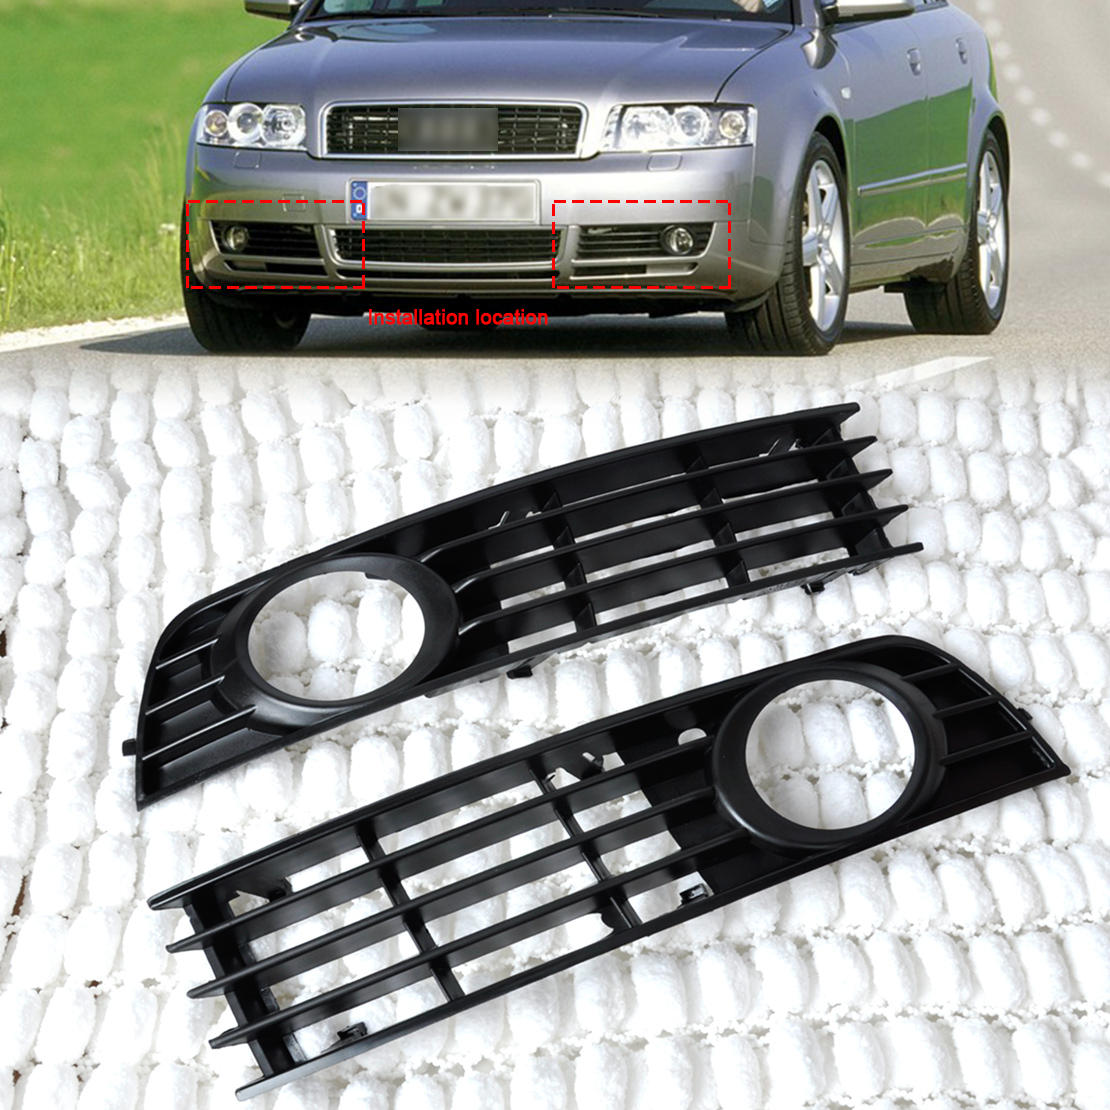 2005 audi a4 grille insert manual how to and user guide instructions u2022 rh taxibermuda co 2015 Audi A4 2013 Audi A4